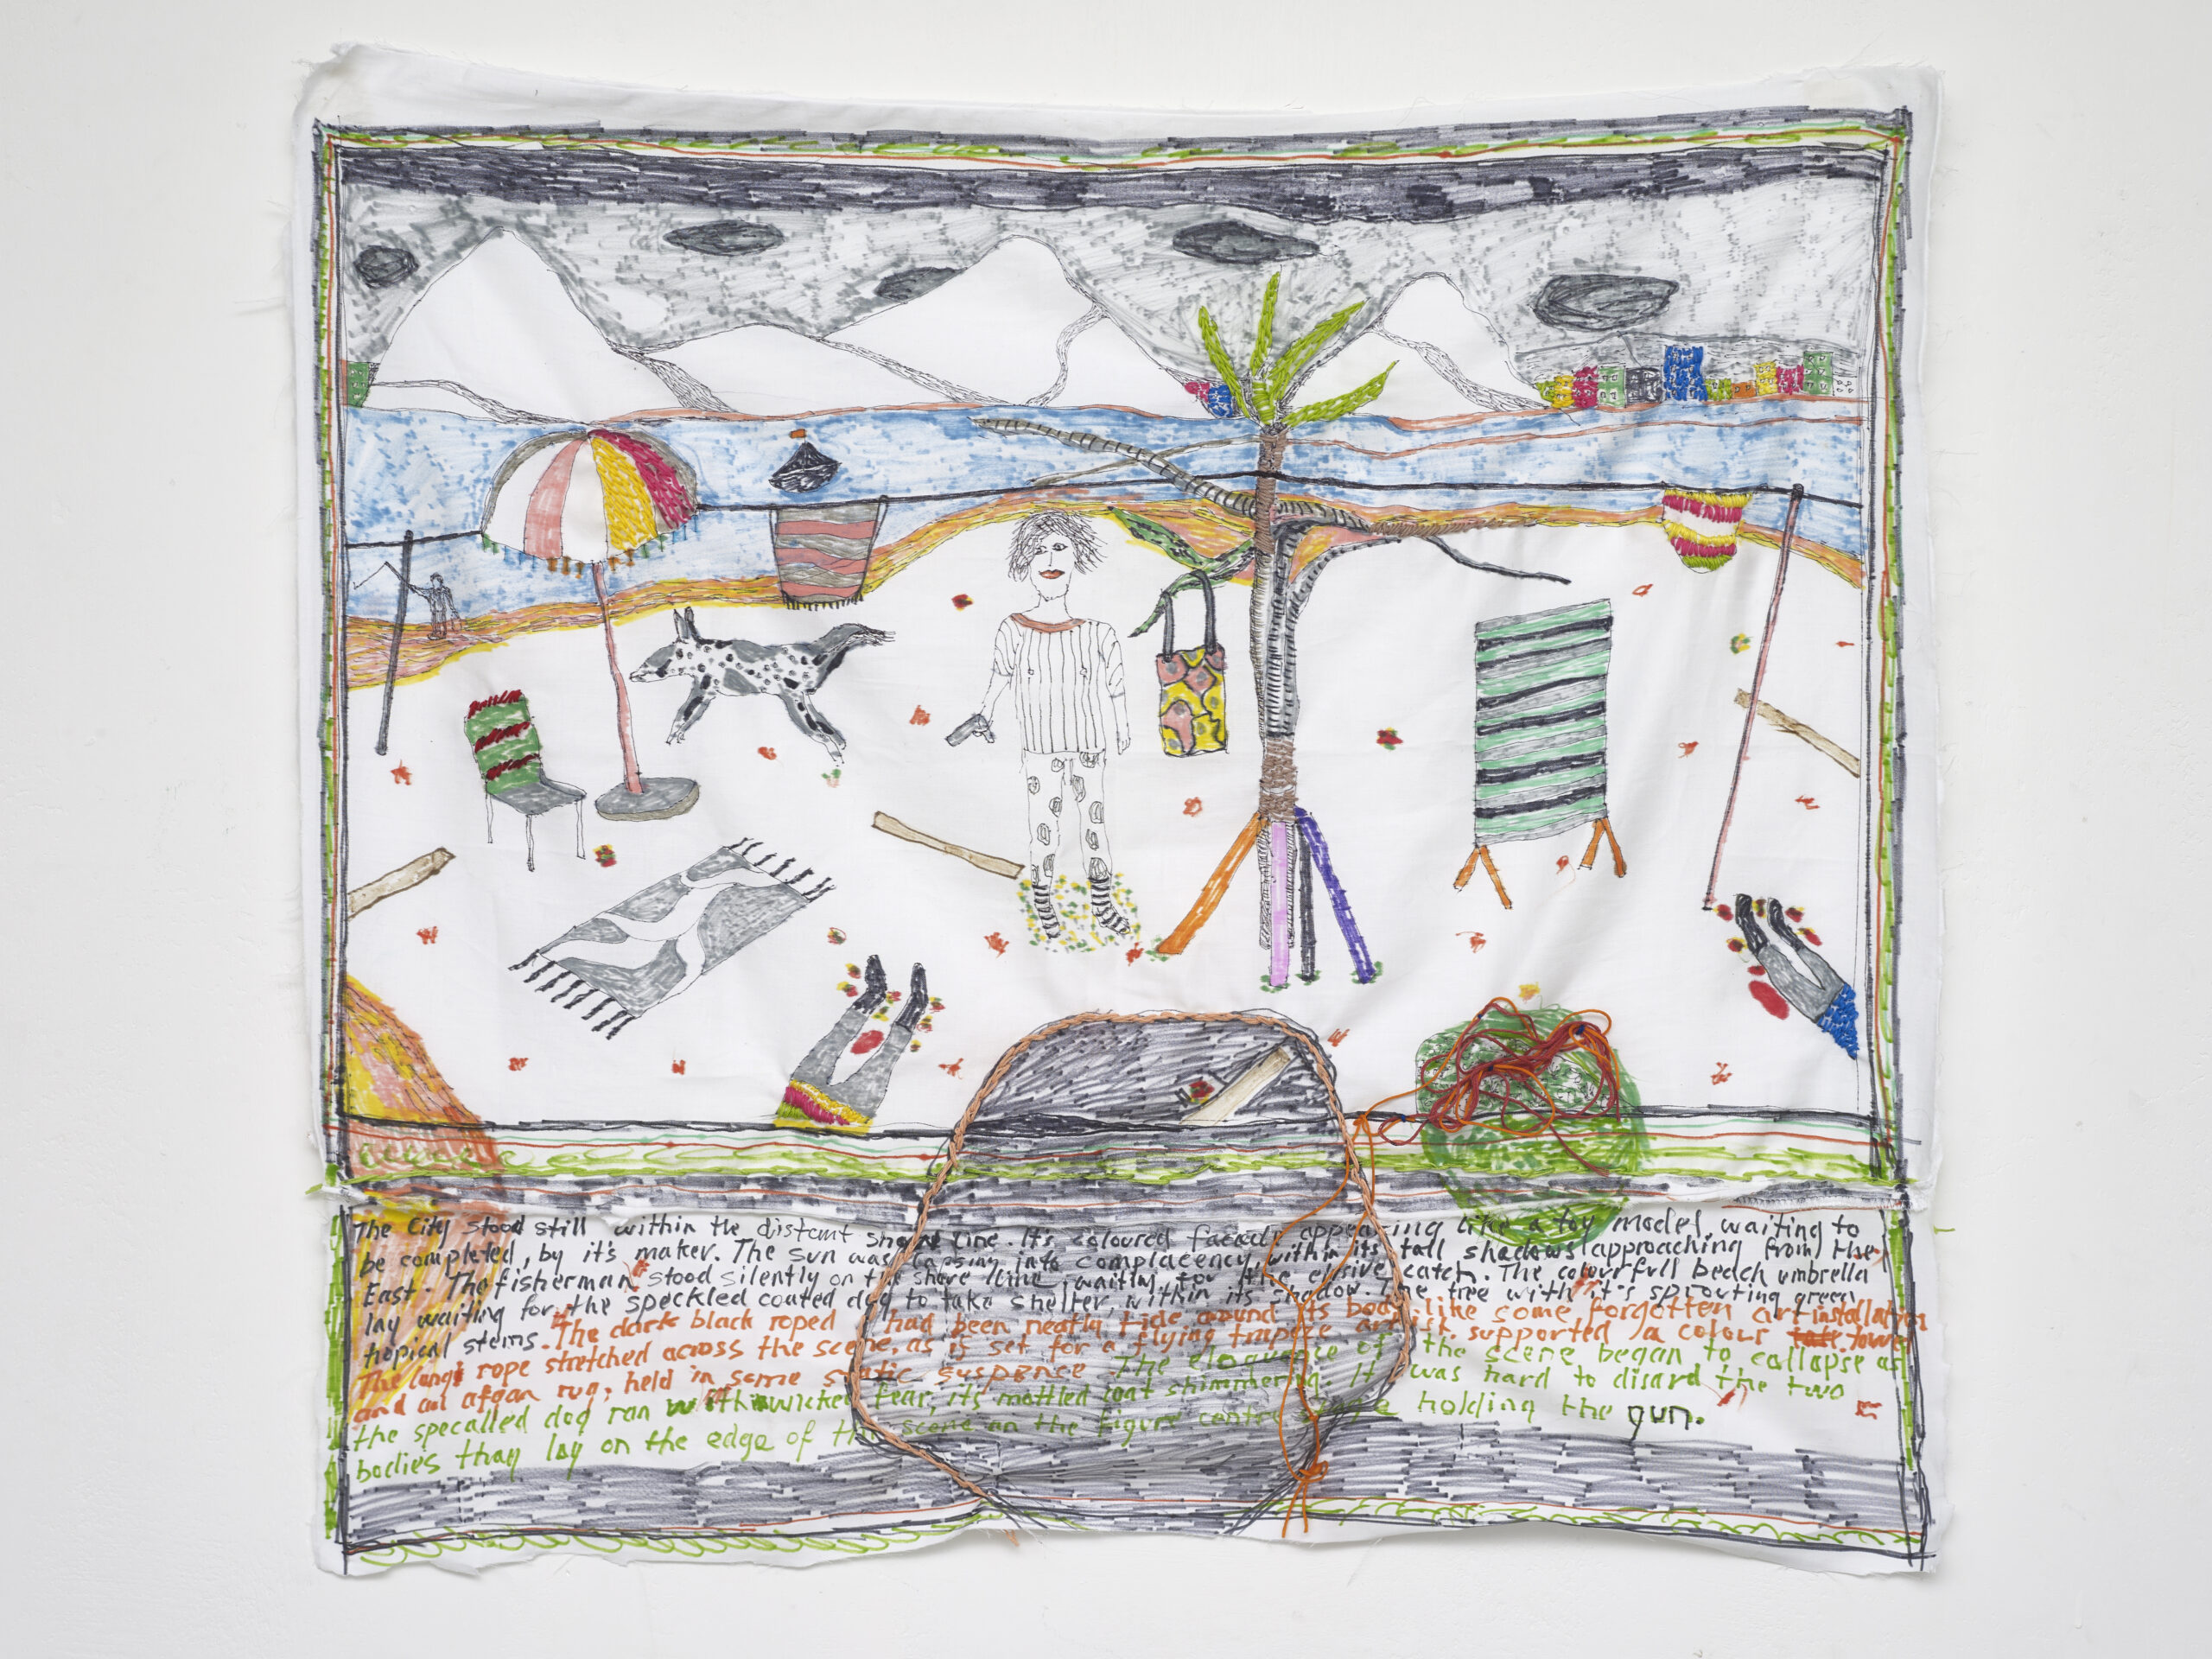 Brian Dawn Chalkley: Waiting for the elusive catch (2020) Pencil, felt tip and thread on cotton pillow case 75 cm x 65 cm